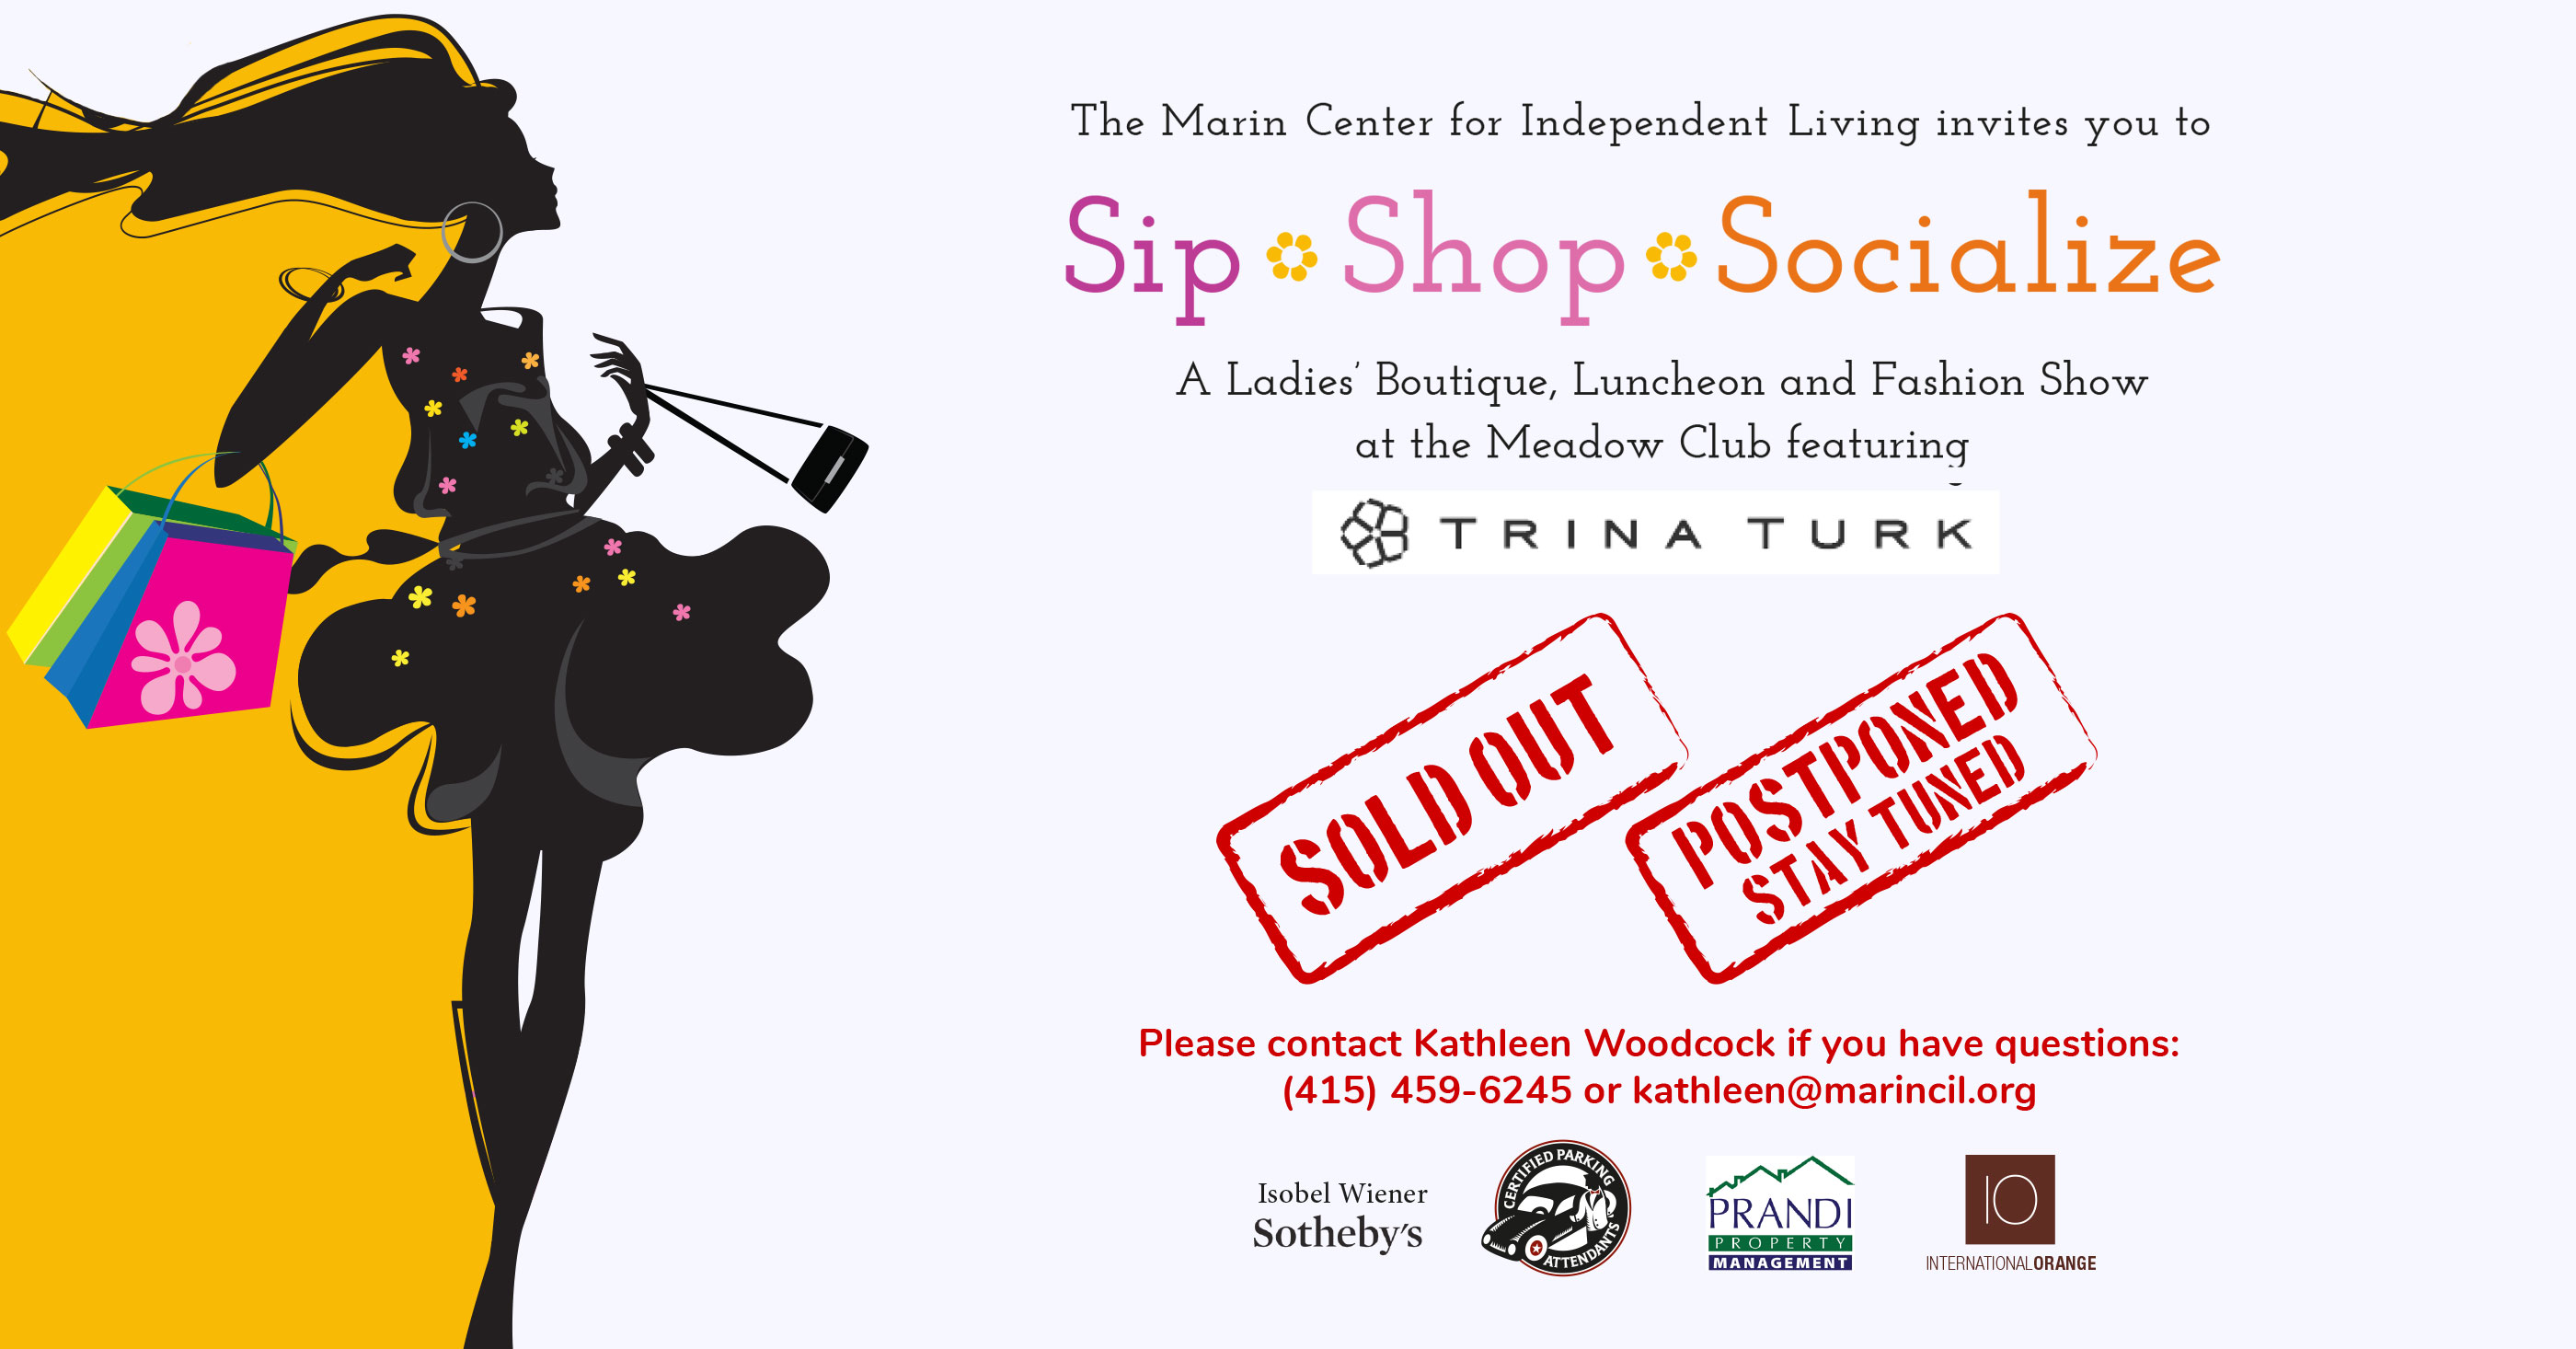 Graphic of your Marin Center for Independent Living invitation to Sip, Shop, Socialize: A Ladies' Boutique, Luncheon and Fashion Show at the Meadow Club (featuring Trina Turk). Sold Out. Postponed, stay tuned. Please contact Kathleen Woodcock if you have questions: (415) 459-6245 or kathleen@marincil.org. Event sponsored by Isobel Wiener Sotheby's, Certified Parking Attendants, Prandi Property Management, and International Orange.